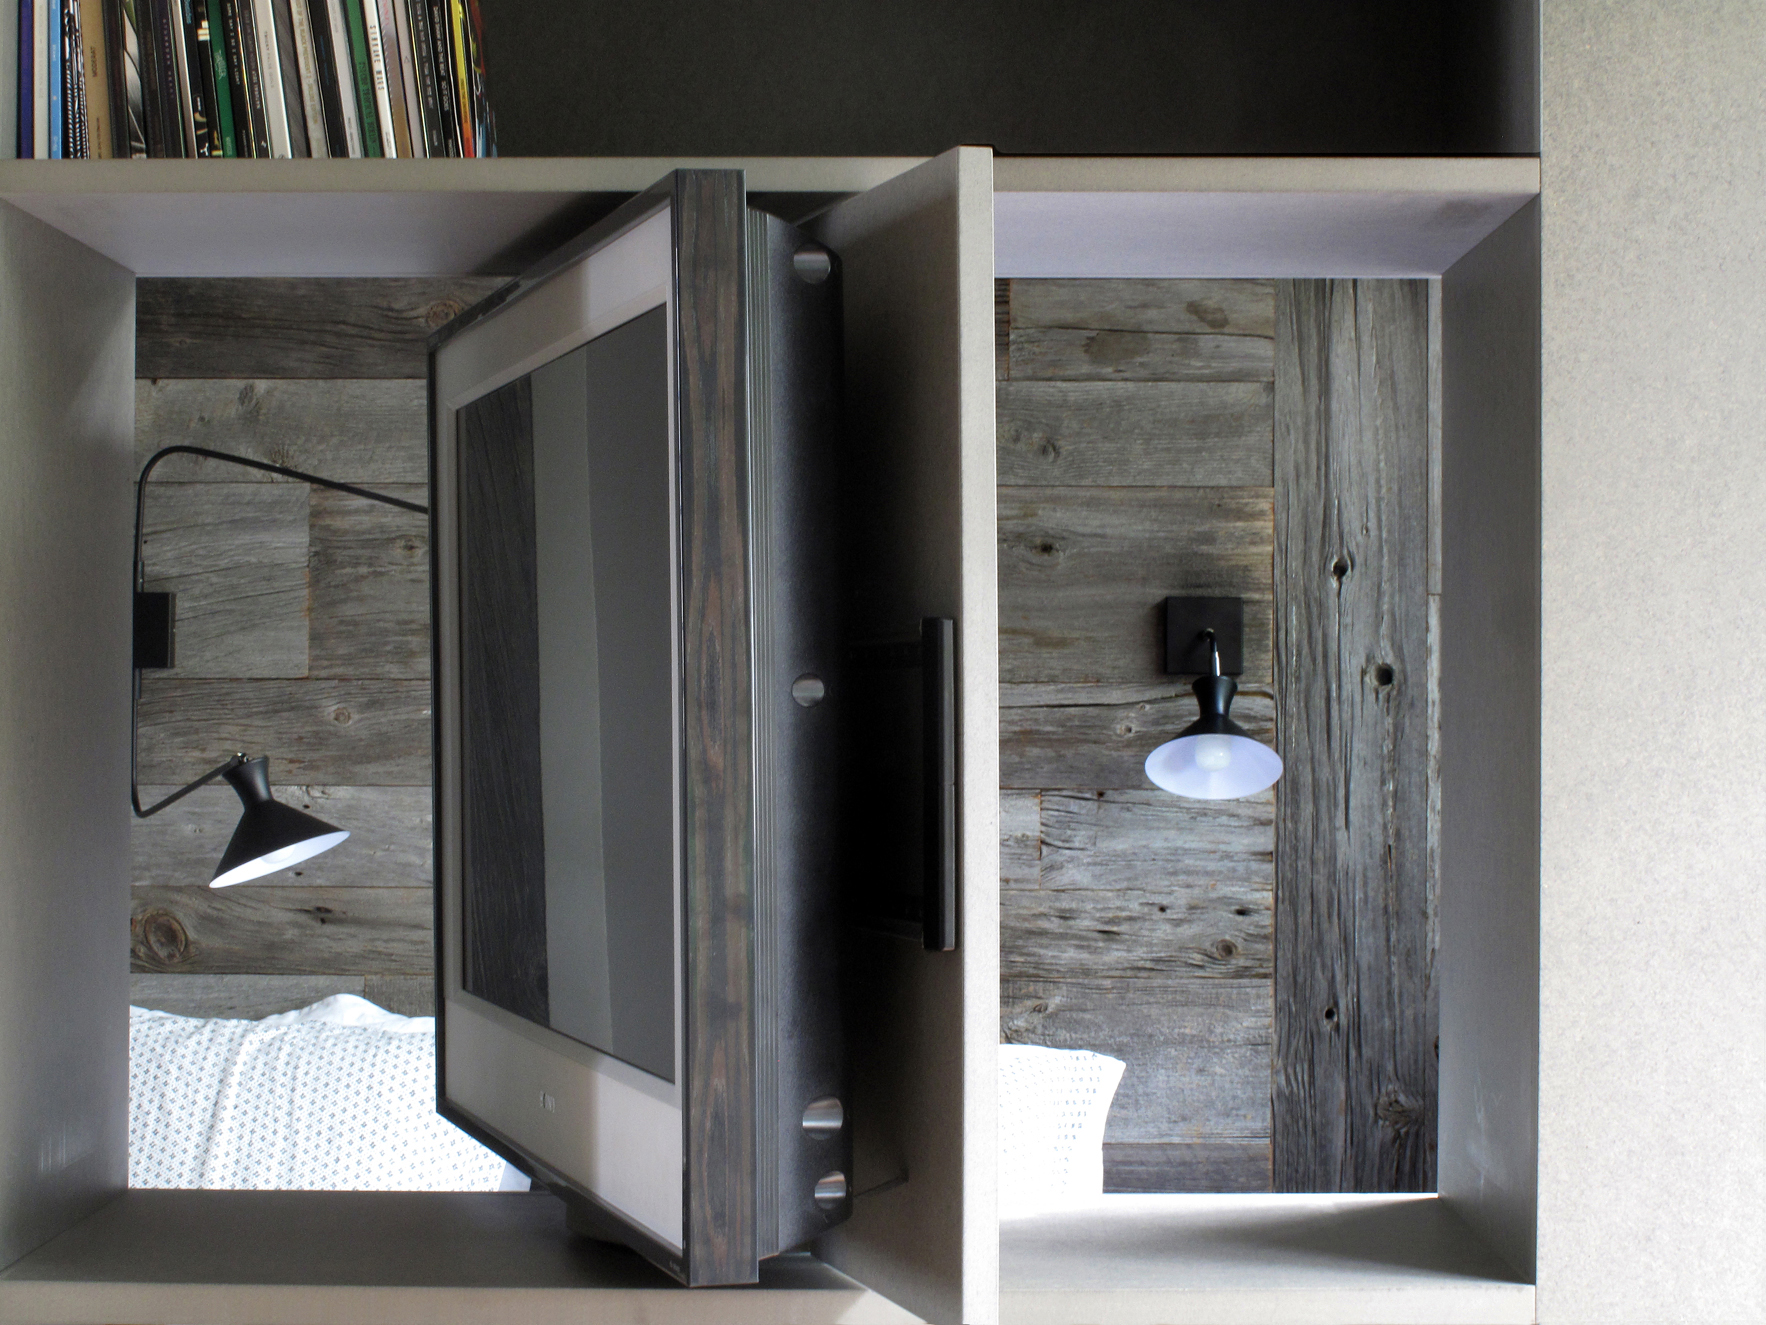 Gain de place arlinea architecture - Gain de place chambre ...